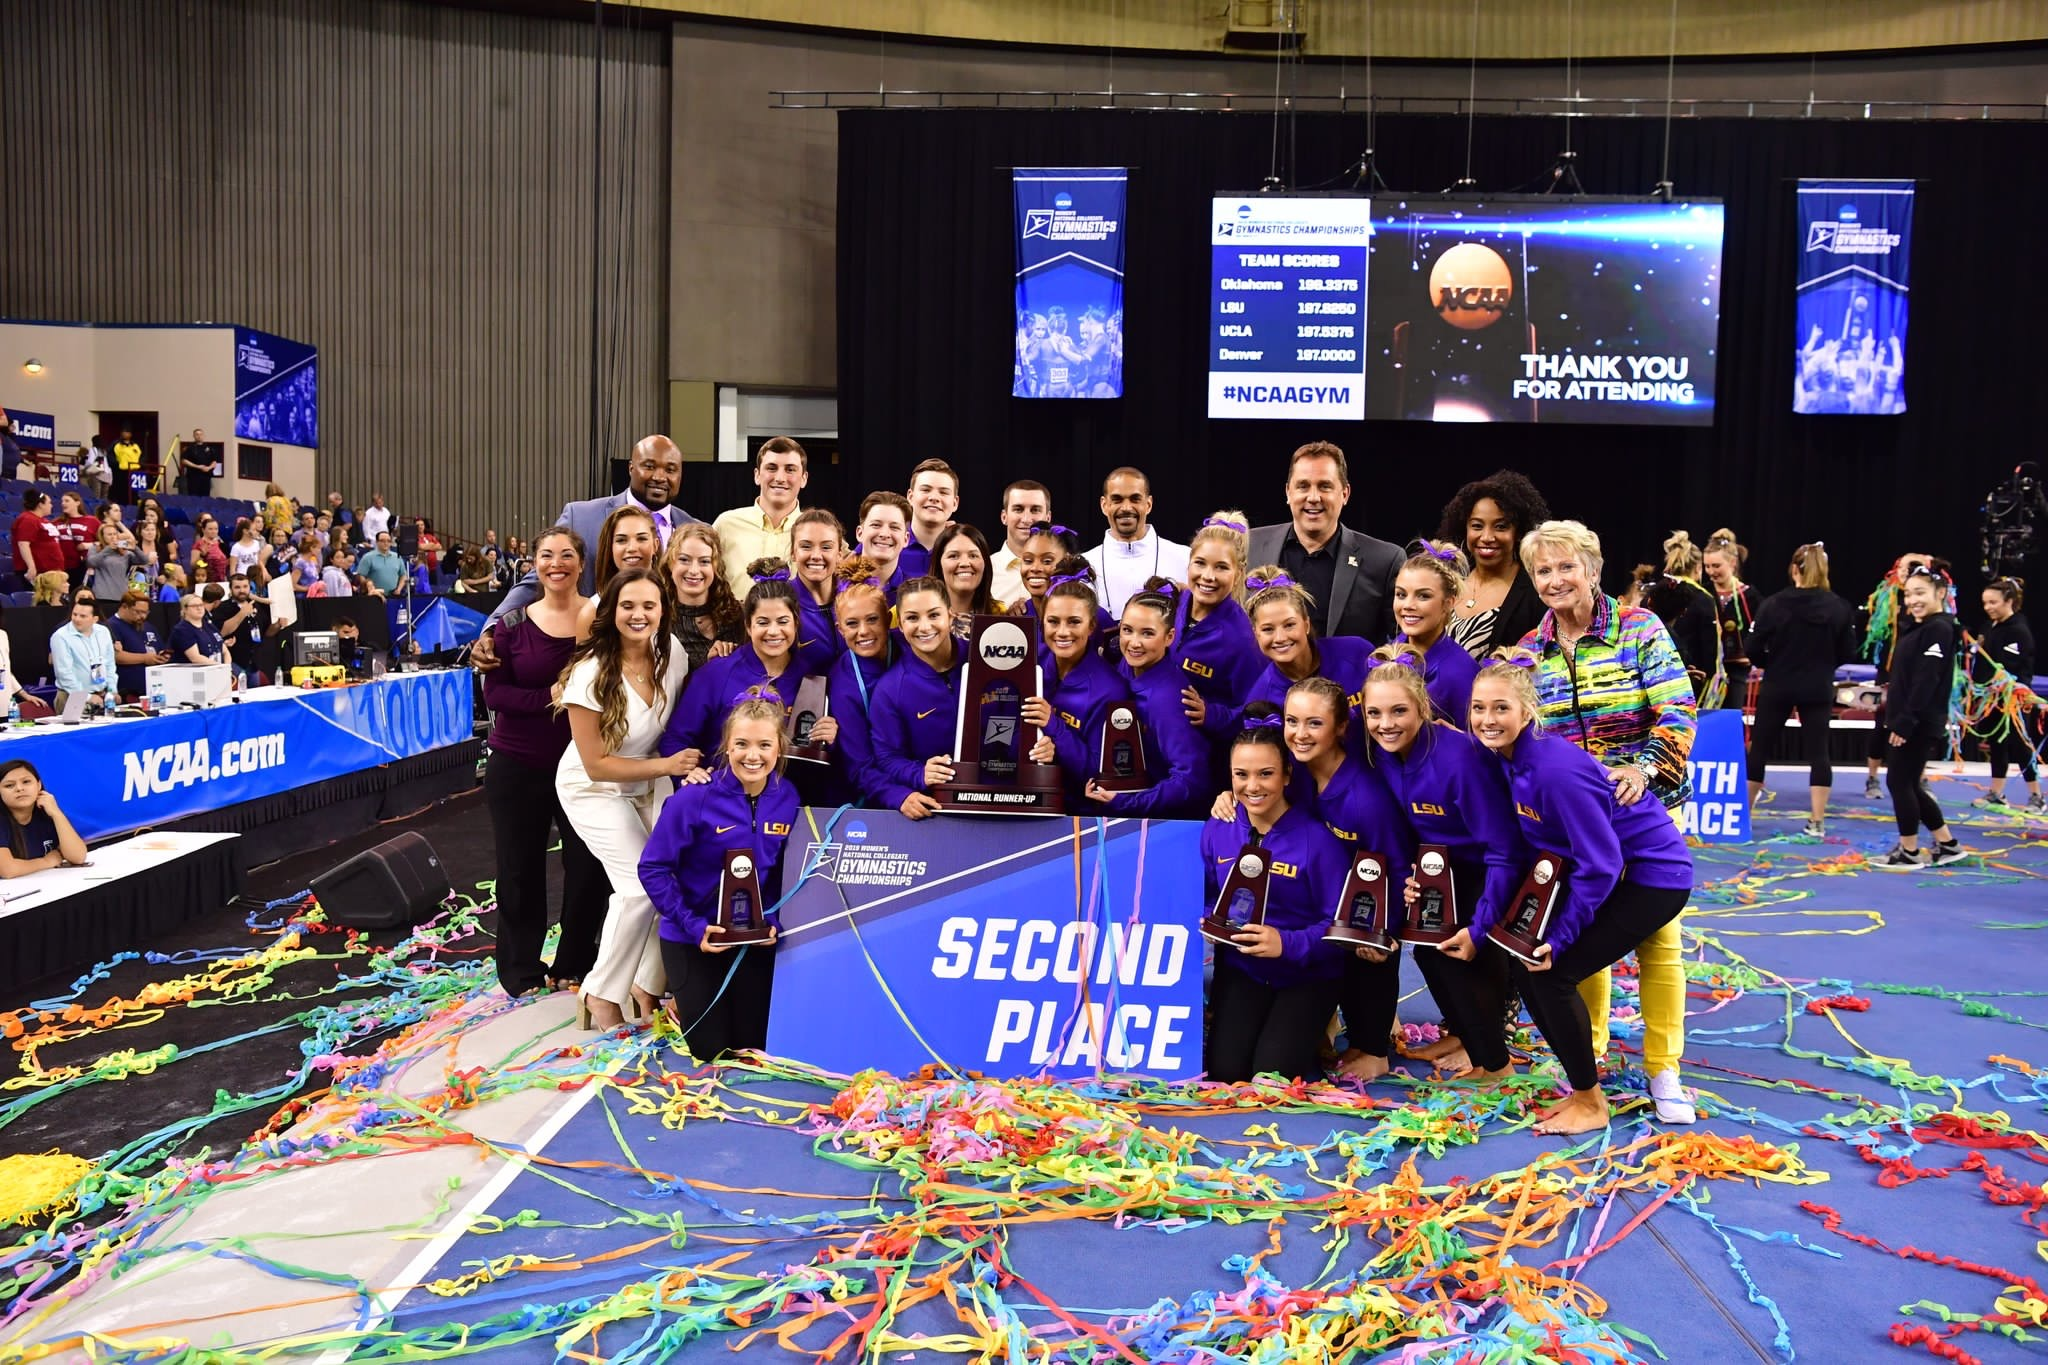 LSU Gym finishes as NCAA National Runner-Up